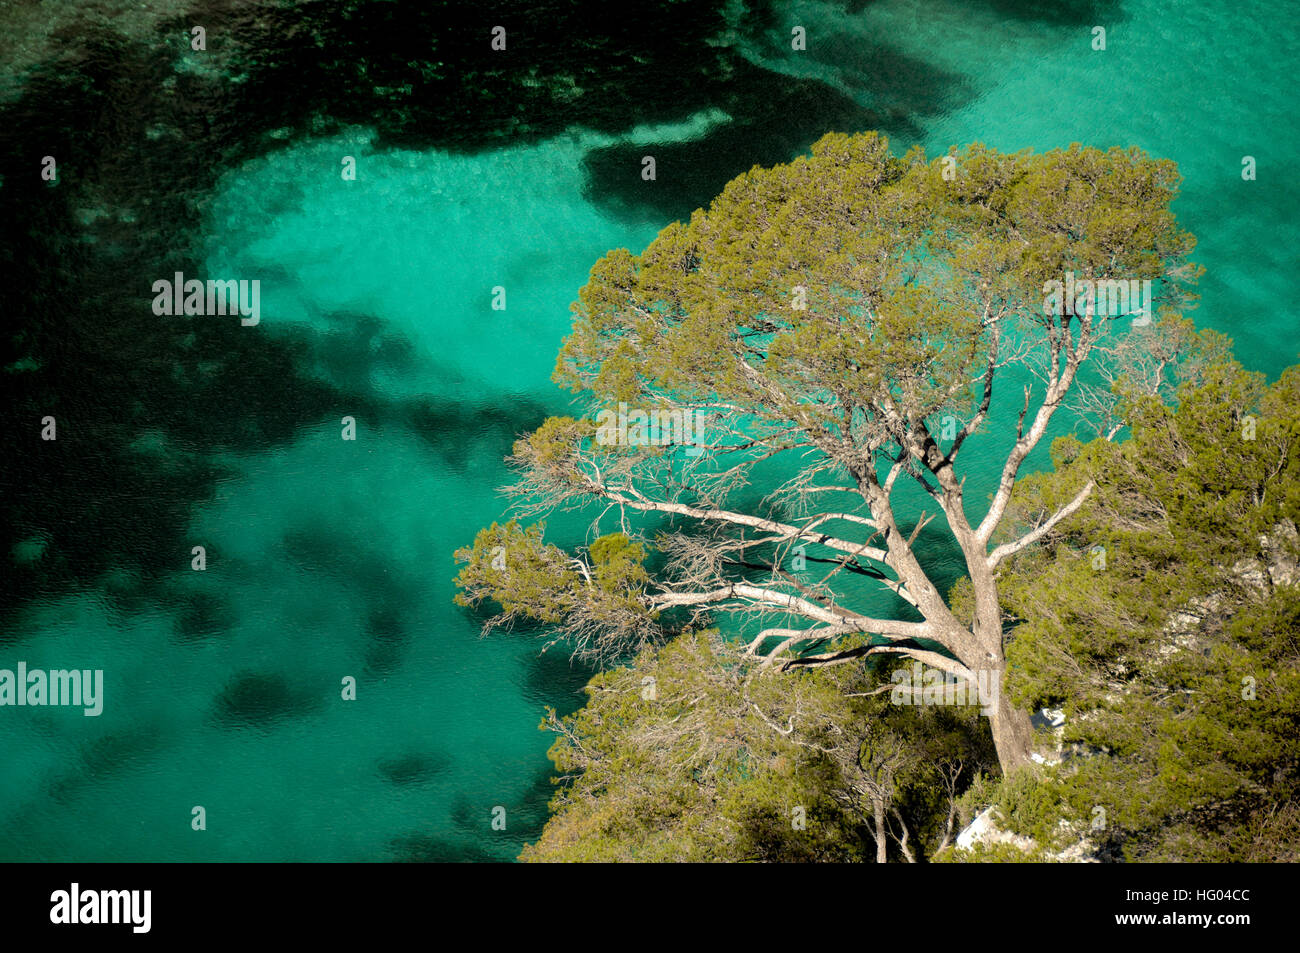 Turquoise waters & Overhanging Pine Tree in the Calanque d'En Vau Inlet, Cove or Fjord in the Calanques - Stock Image